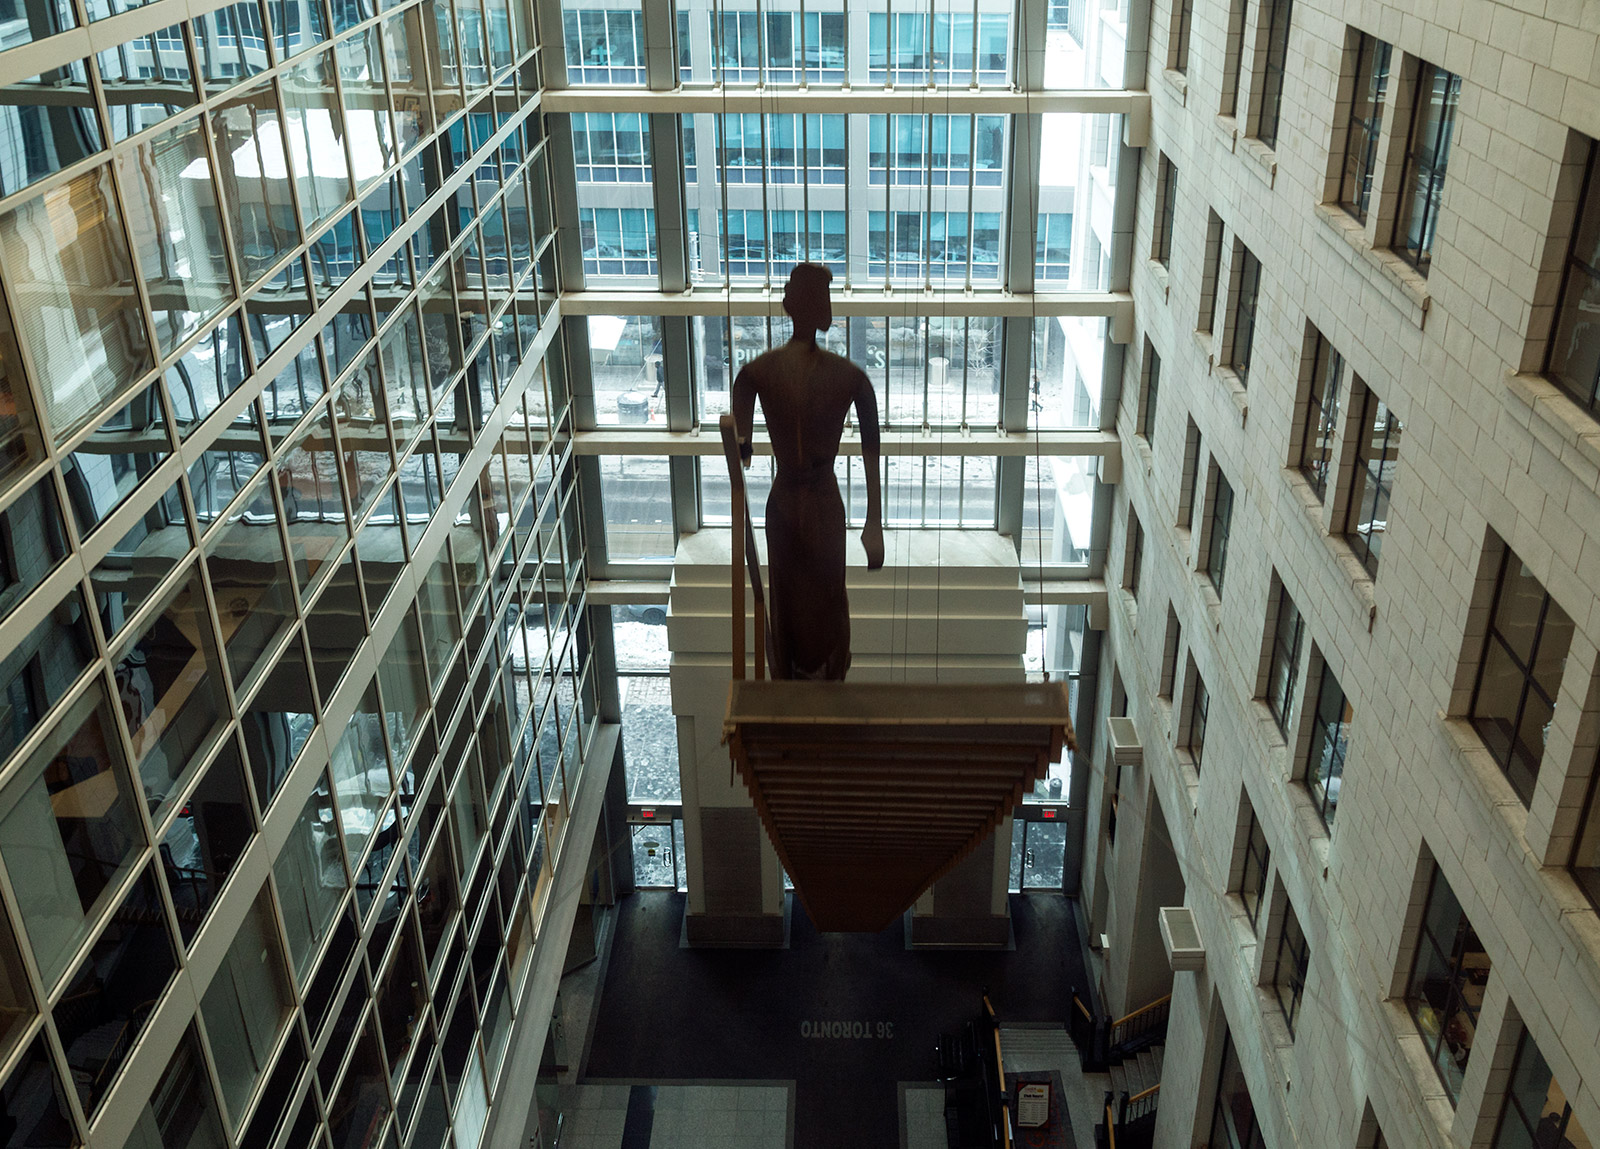 20150303. Sculptures climb suspended stairs inside Toronto's Exc